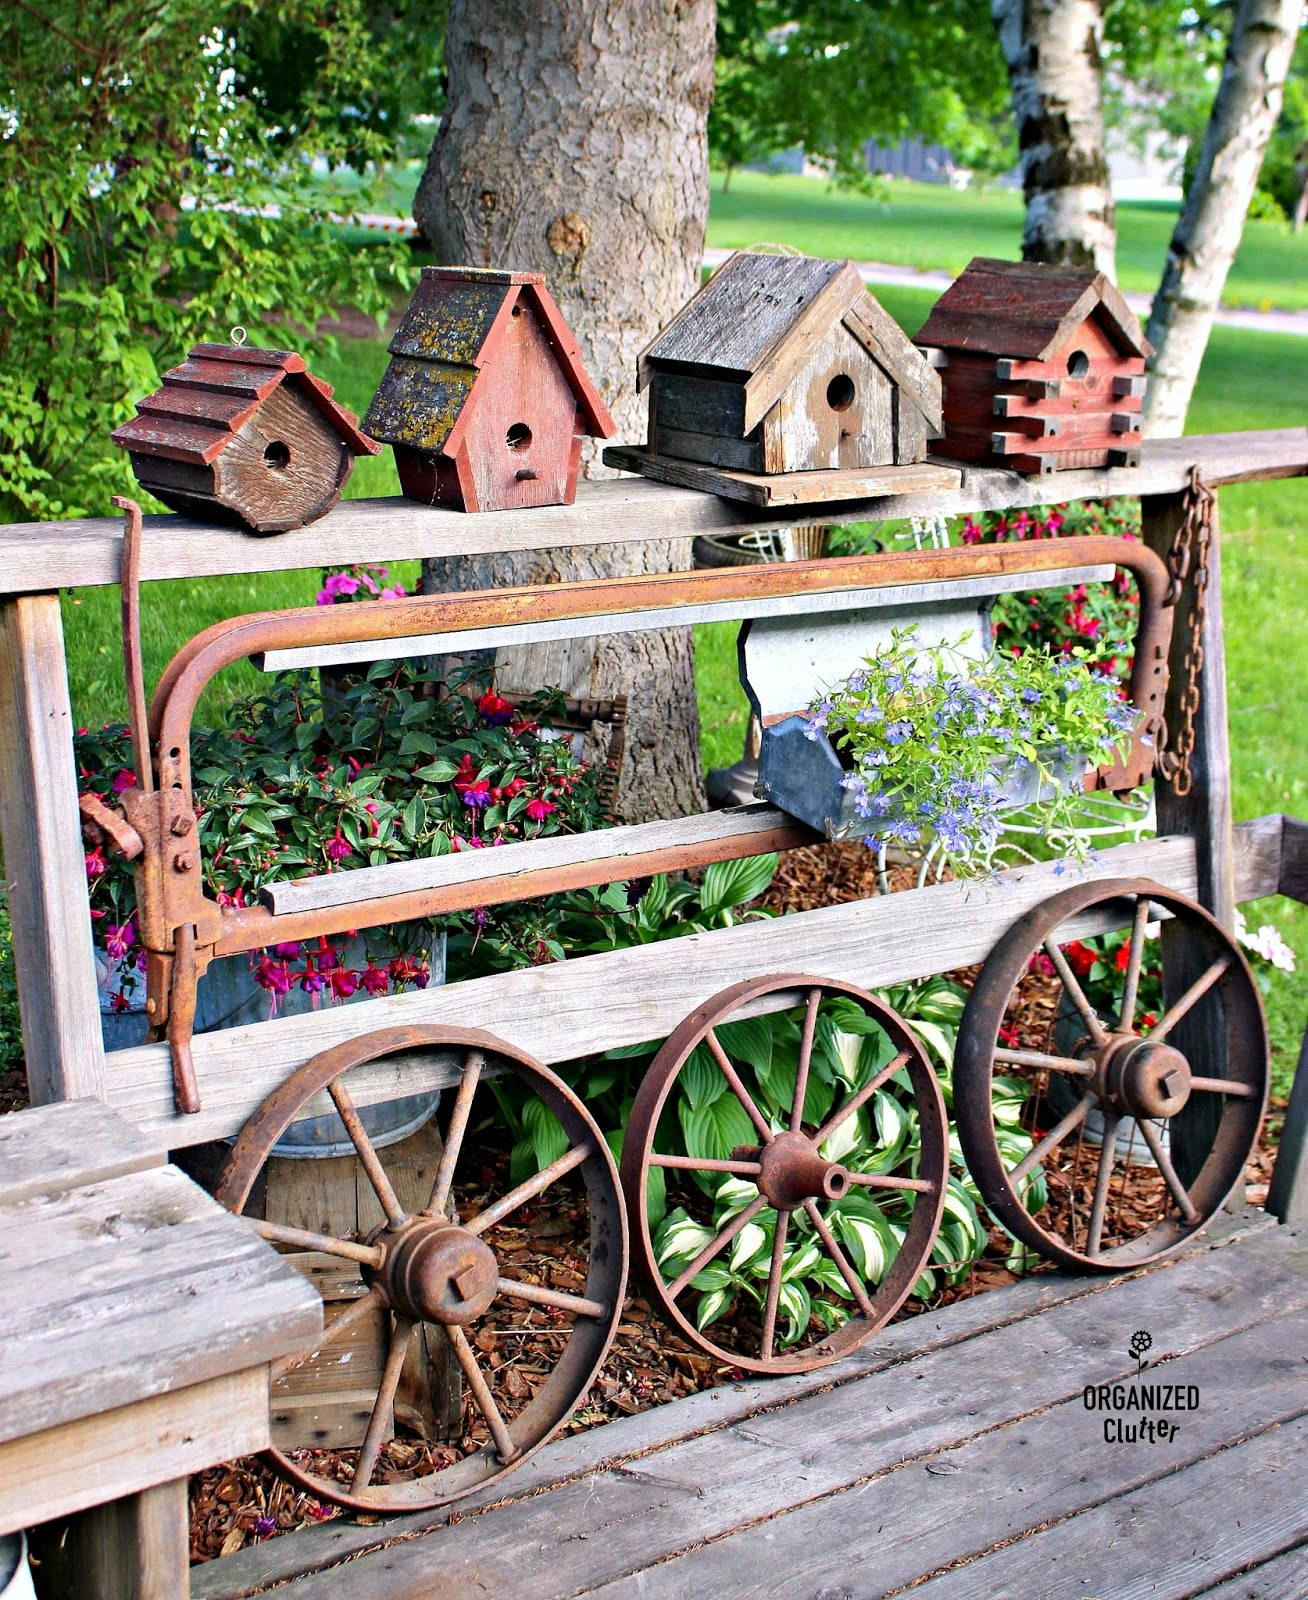 Dairy Farm Stanchion Junk Garden Decor by Organized Clutter, featured on Funky Junk Interiors